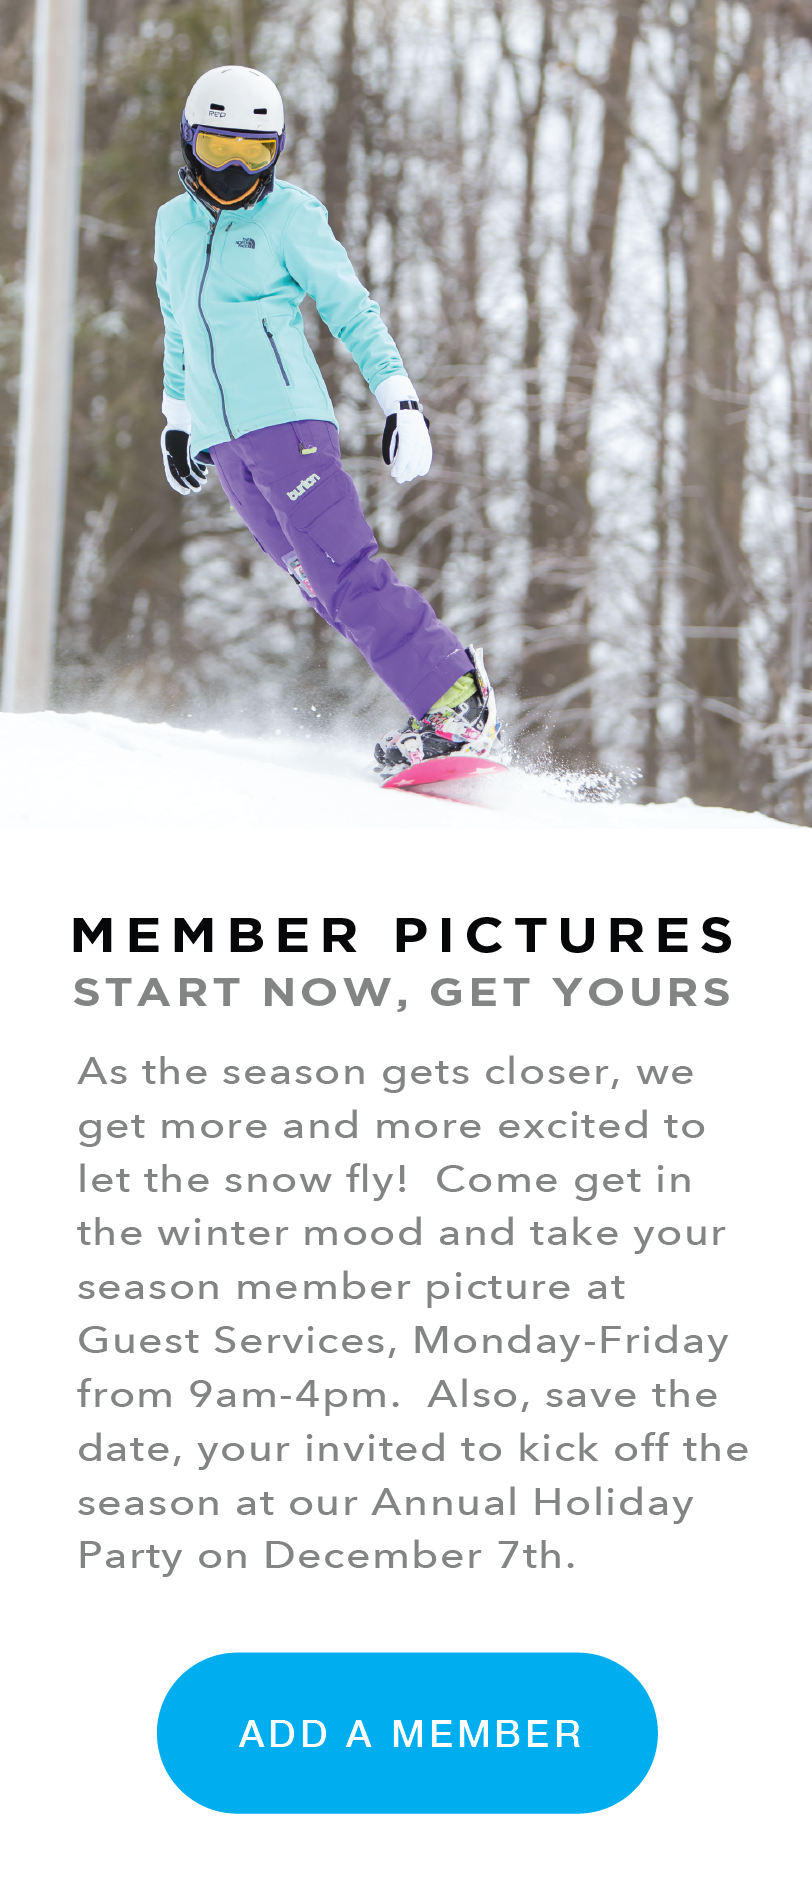 Montage Mountain Season Membership